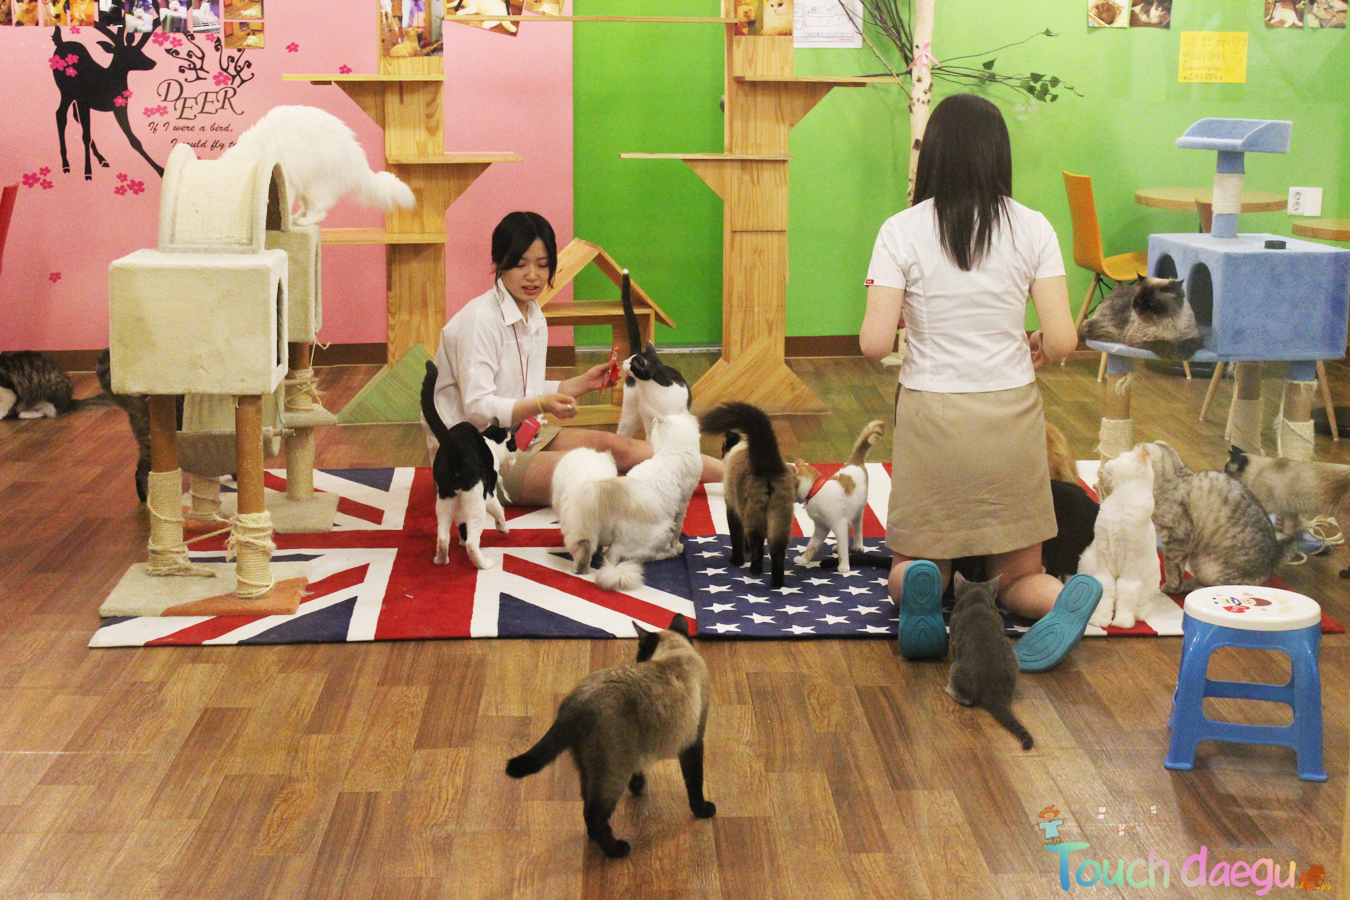 The visitors are playing with lovable cats